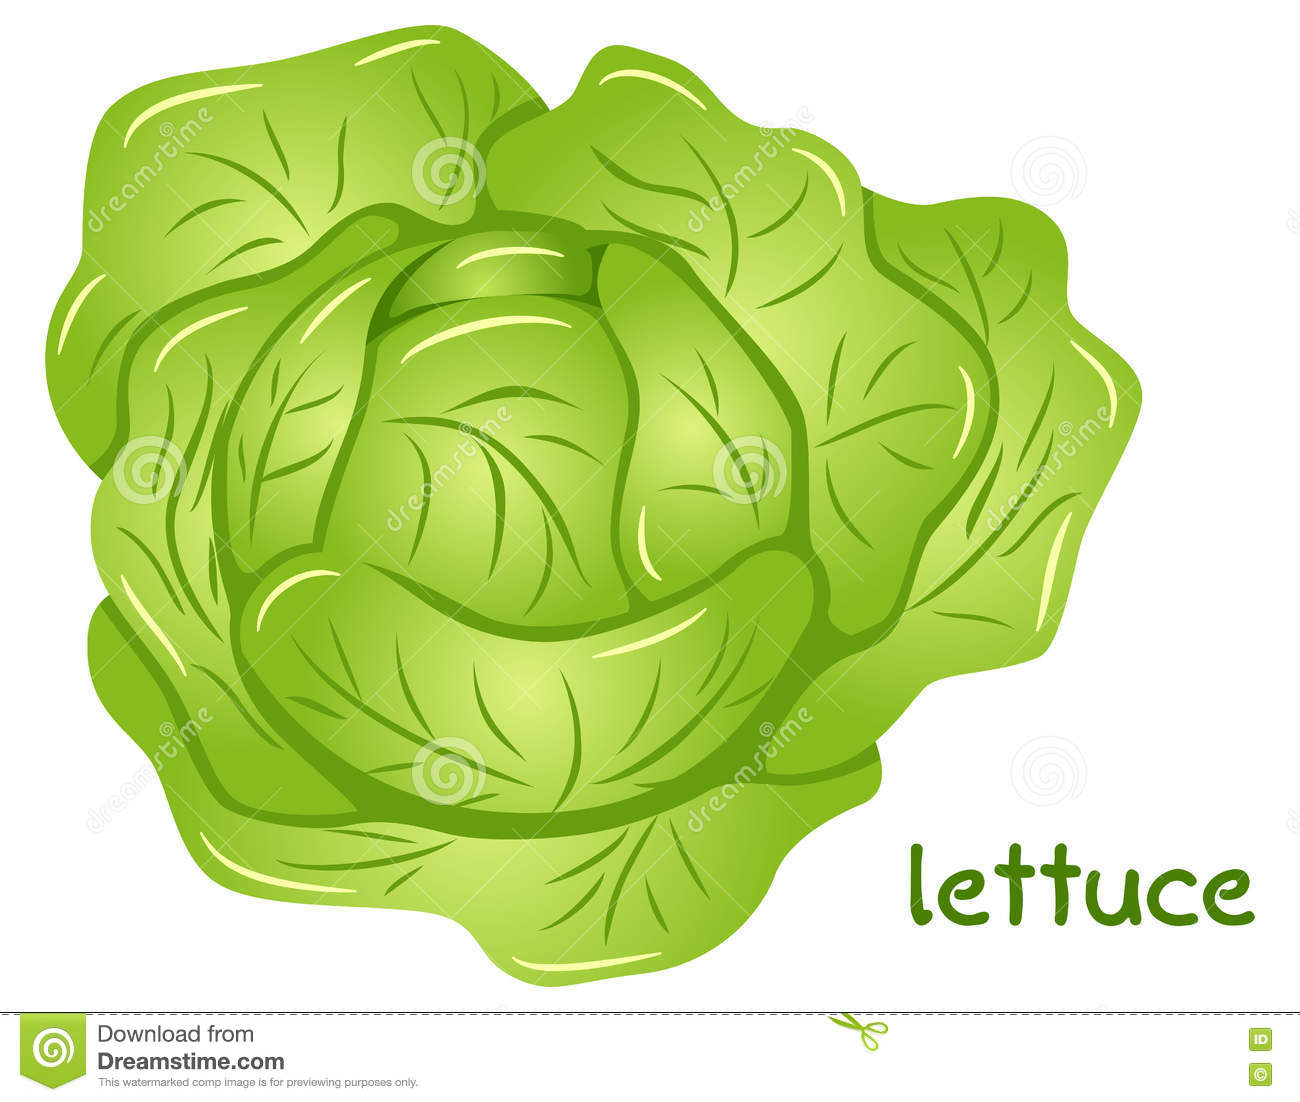 Head of lettuce clipart - Clipground